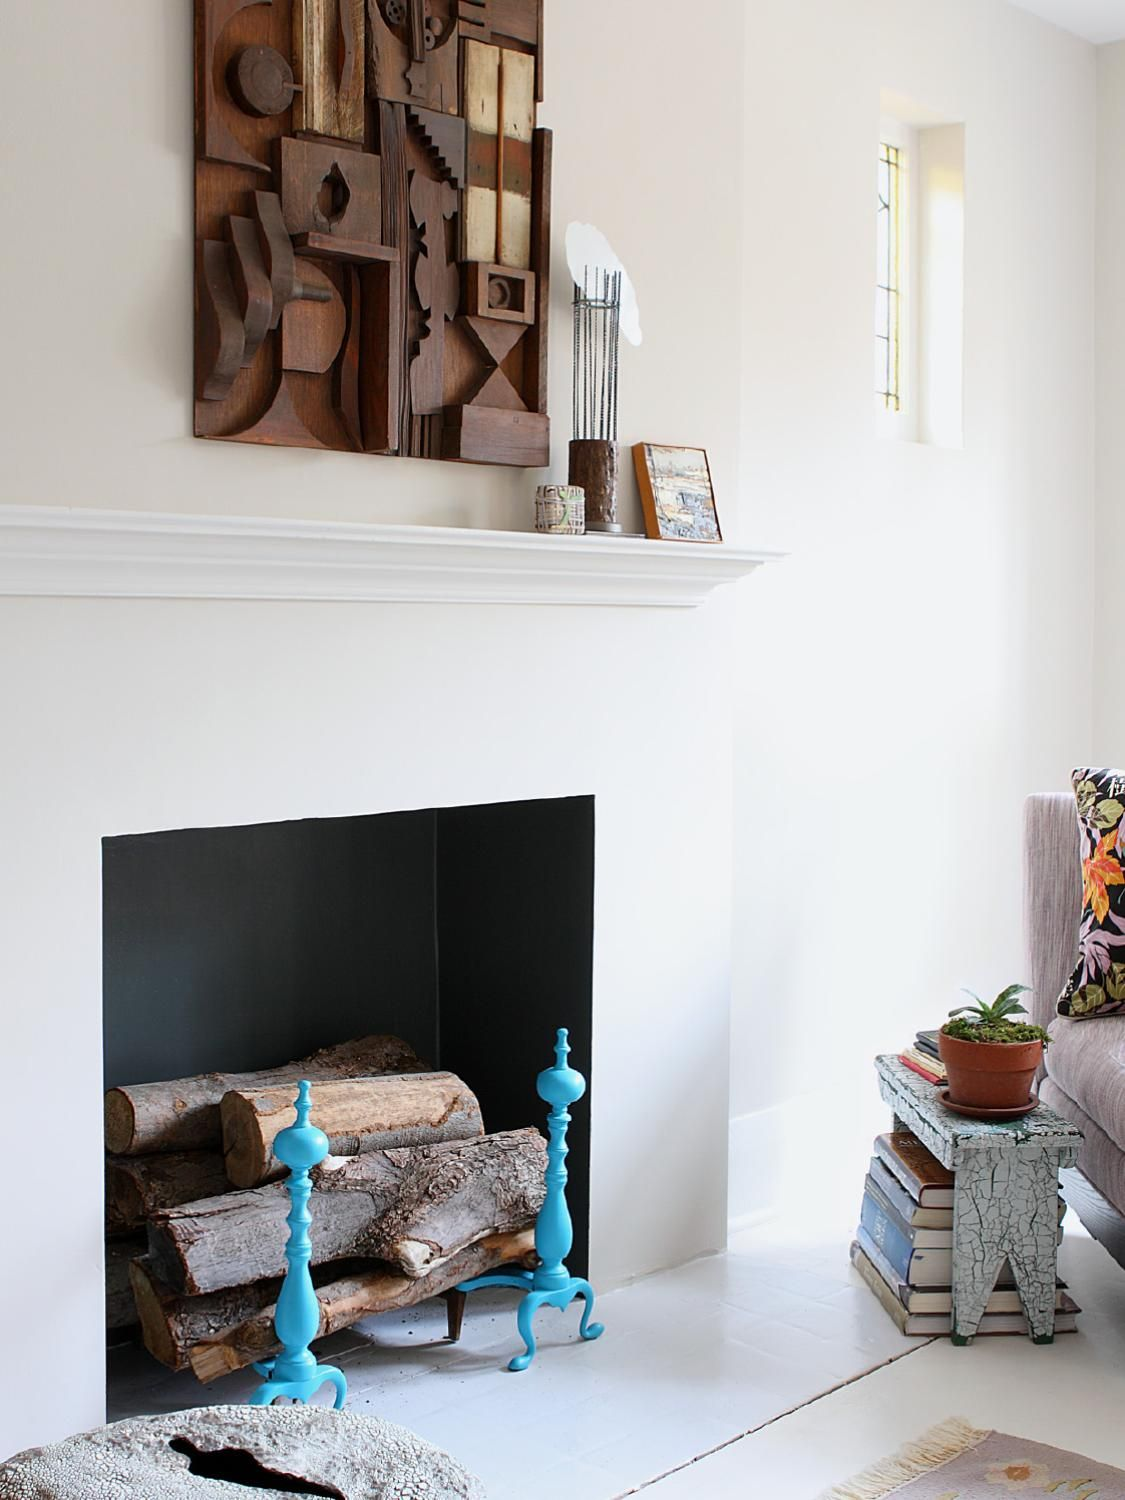 Artist Holly's place is full of light, textiles and lots of inspiration.